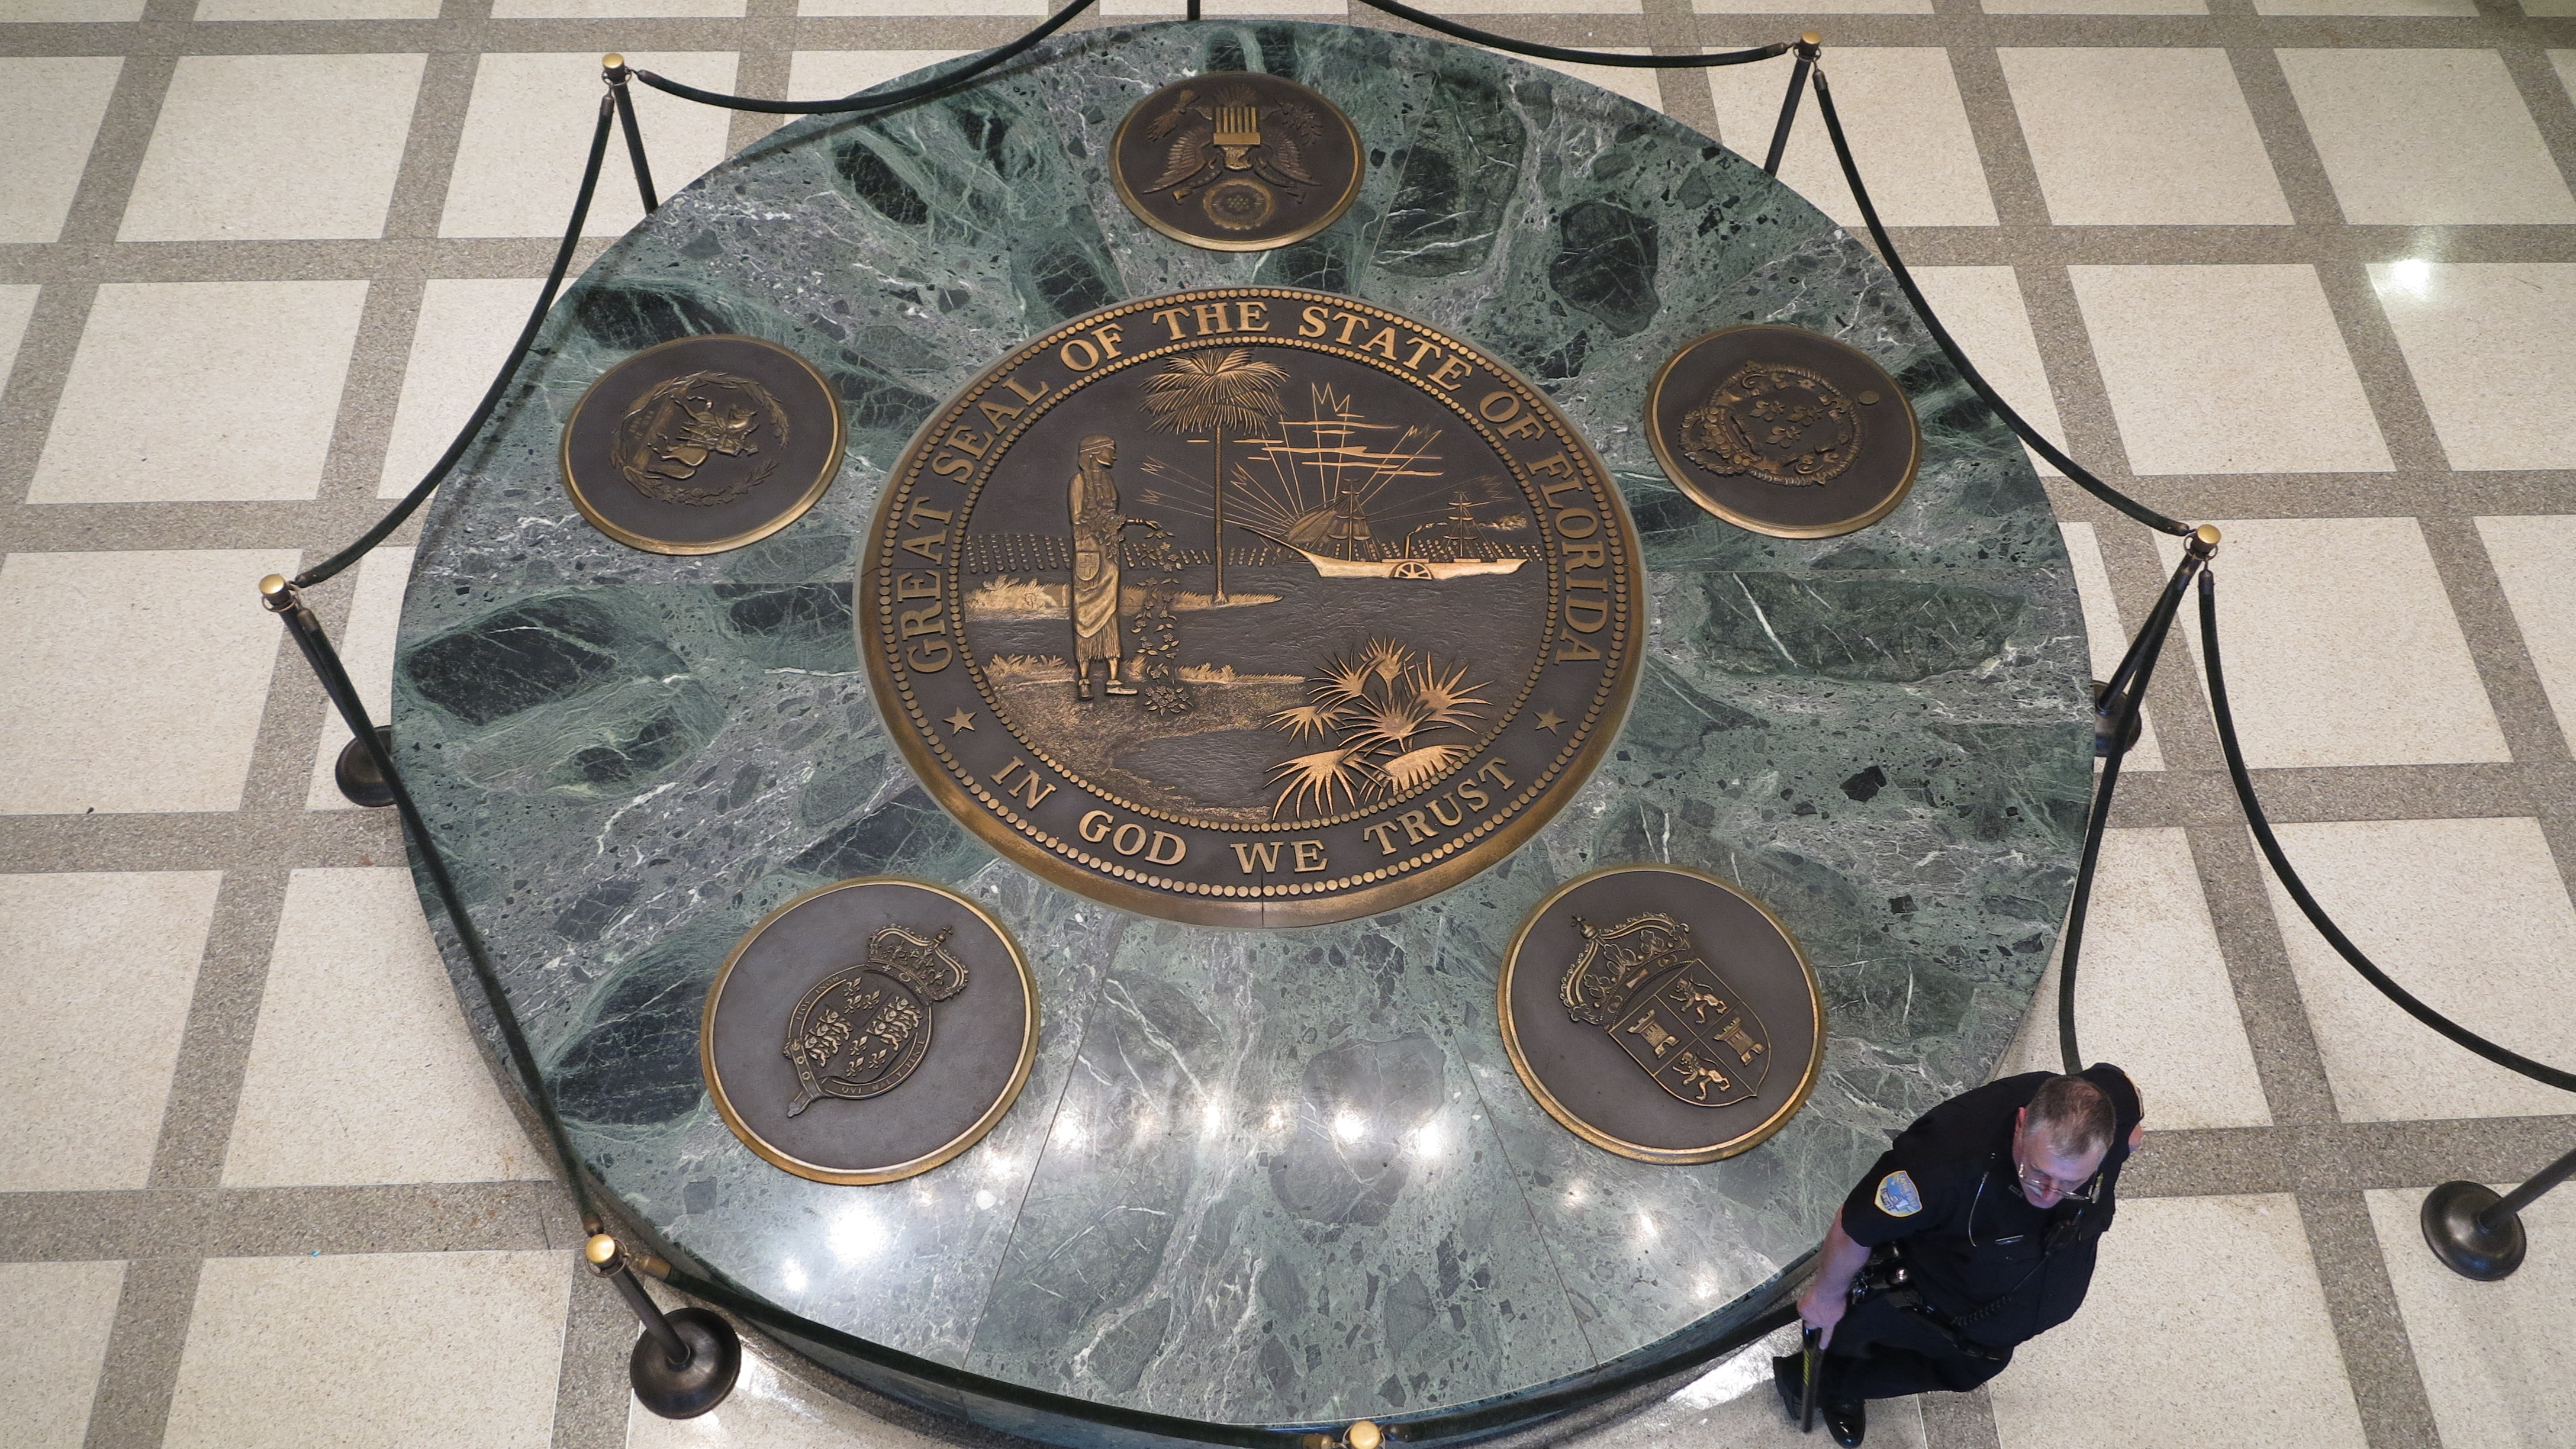 The Great Seal of State of FL 1 2013